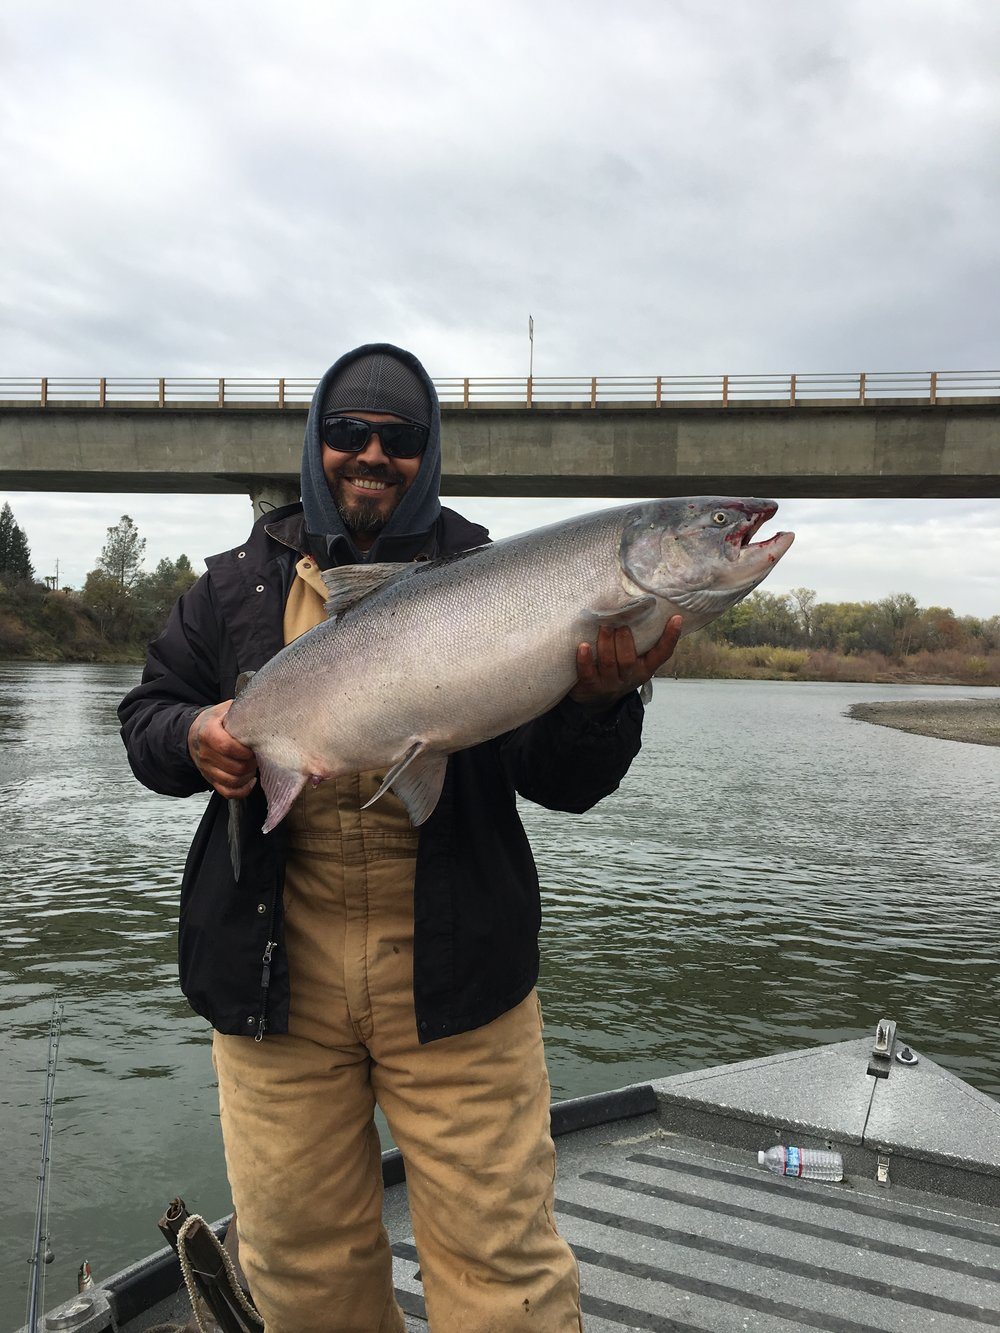 Juan Nava from Red Bluff, Ca, owner and artist at First Love Tattoo also in Red Bluff, Ca holds a Sacramento River Late Fall King Salmon caught in late November with  SalmonSacRiver.com  salmon fishing guide Mike Rasmussen. This chrome Sacramento River salmon was caught using a kwikfish with a sardine wrap on the Sacramento River at Woodson Bridge.  Mike's Fishing Guide & Charter Service For Sacramento River Fishing targeting King Salmon, Sockeye Salmon, Striped Bass, Sturgeon, Shad And Trout the best Sacramento River Fishing guide and Sacramento River Charter on Sac River